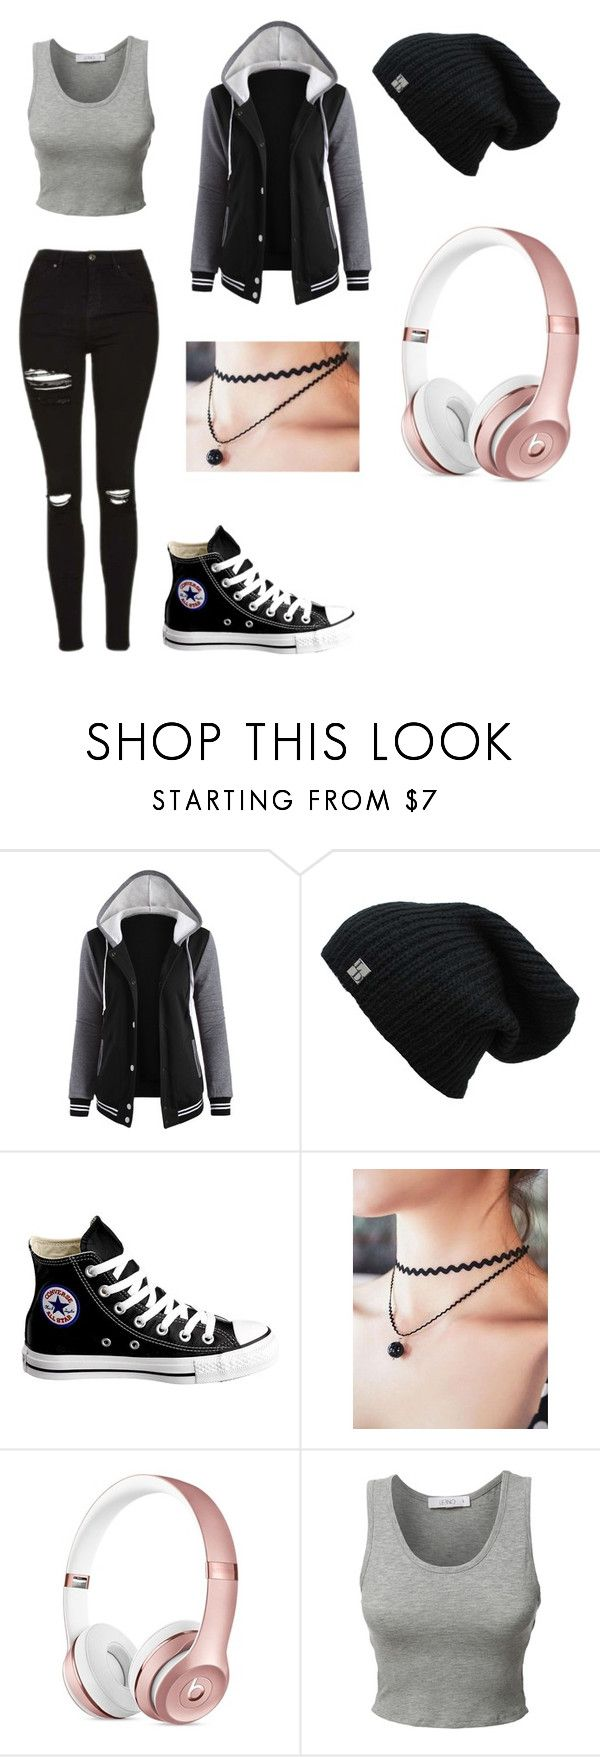 """MY2-1"" by theemounicorn0907 ❤ liked on Polyvore featuring Converse and LE3NO"